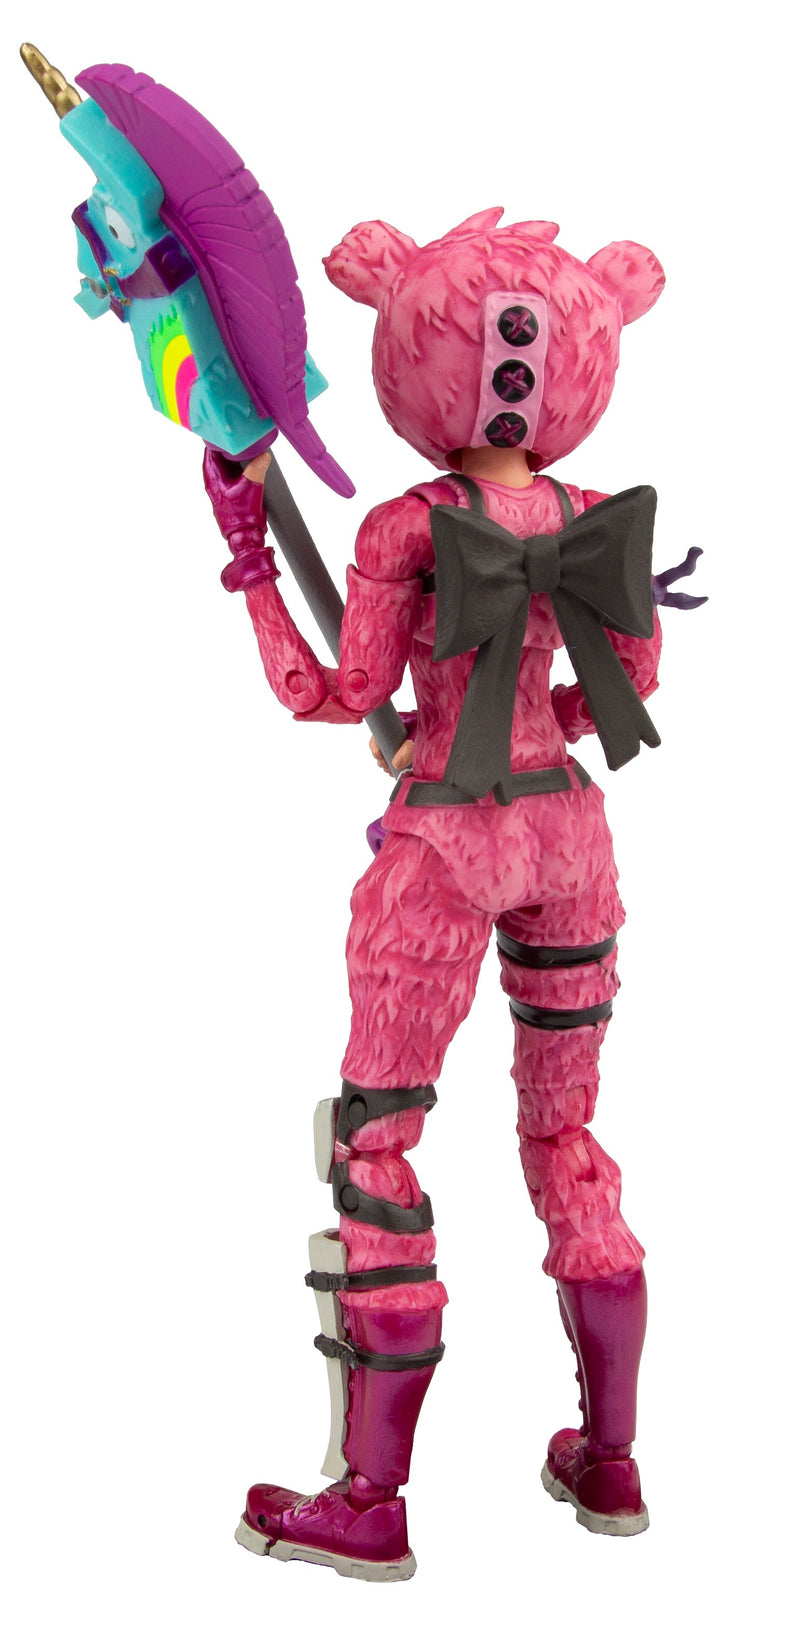 Fortnite Official Cuddle Leader Figure by McFarlane Toys